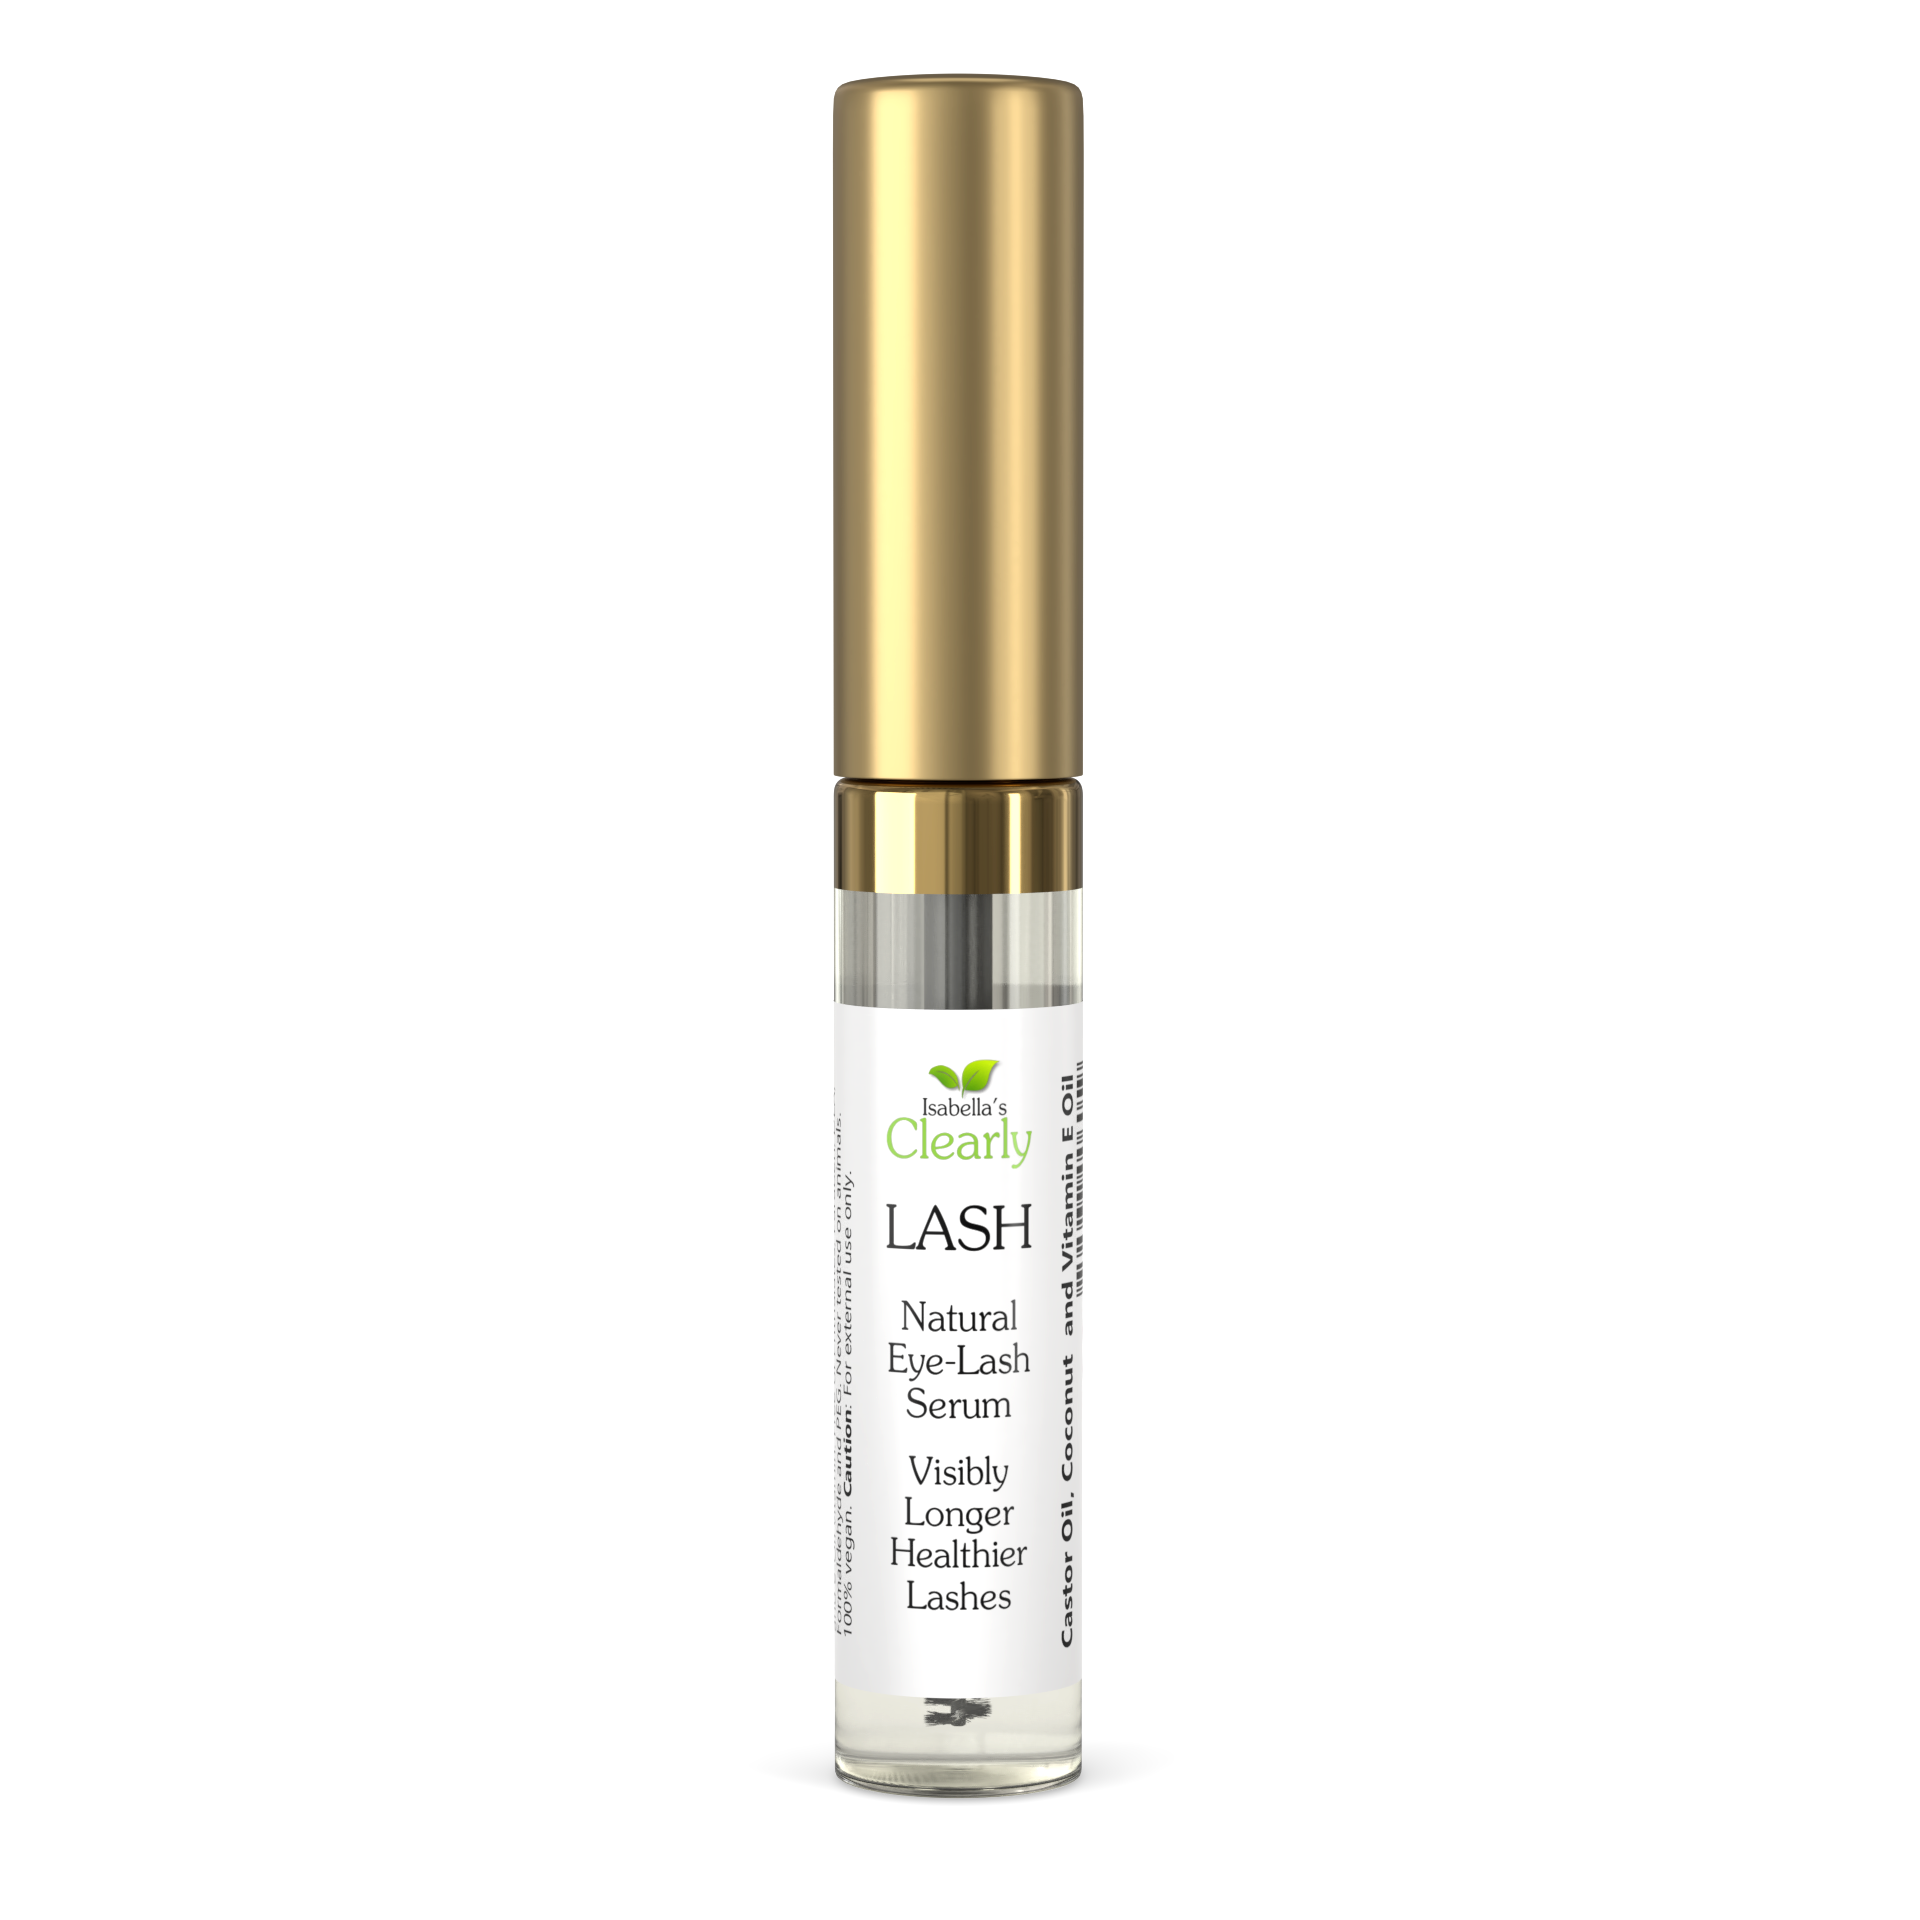 Clearly LASH - Eyelash and Eyebrow Growth Serum